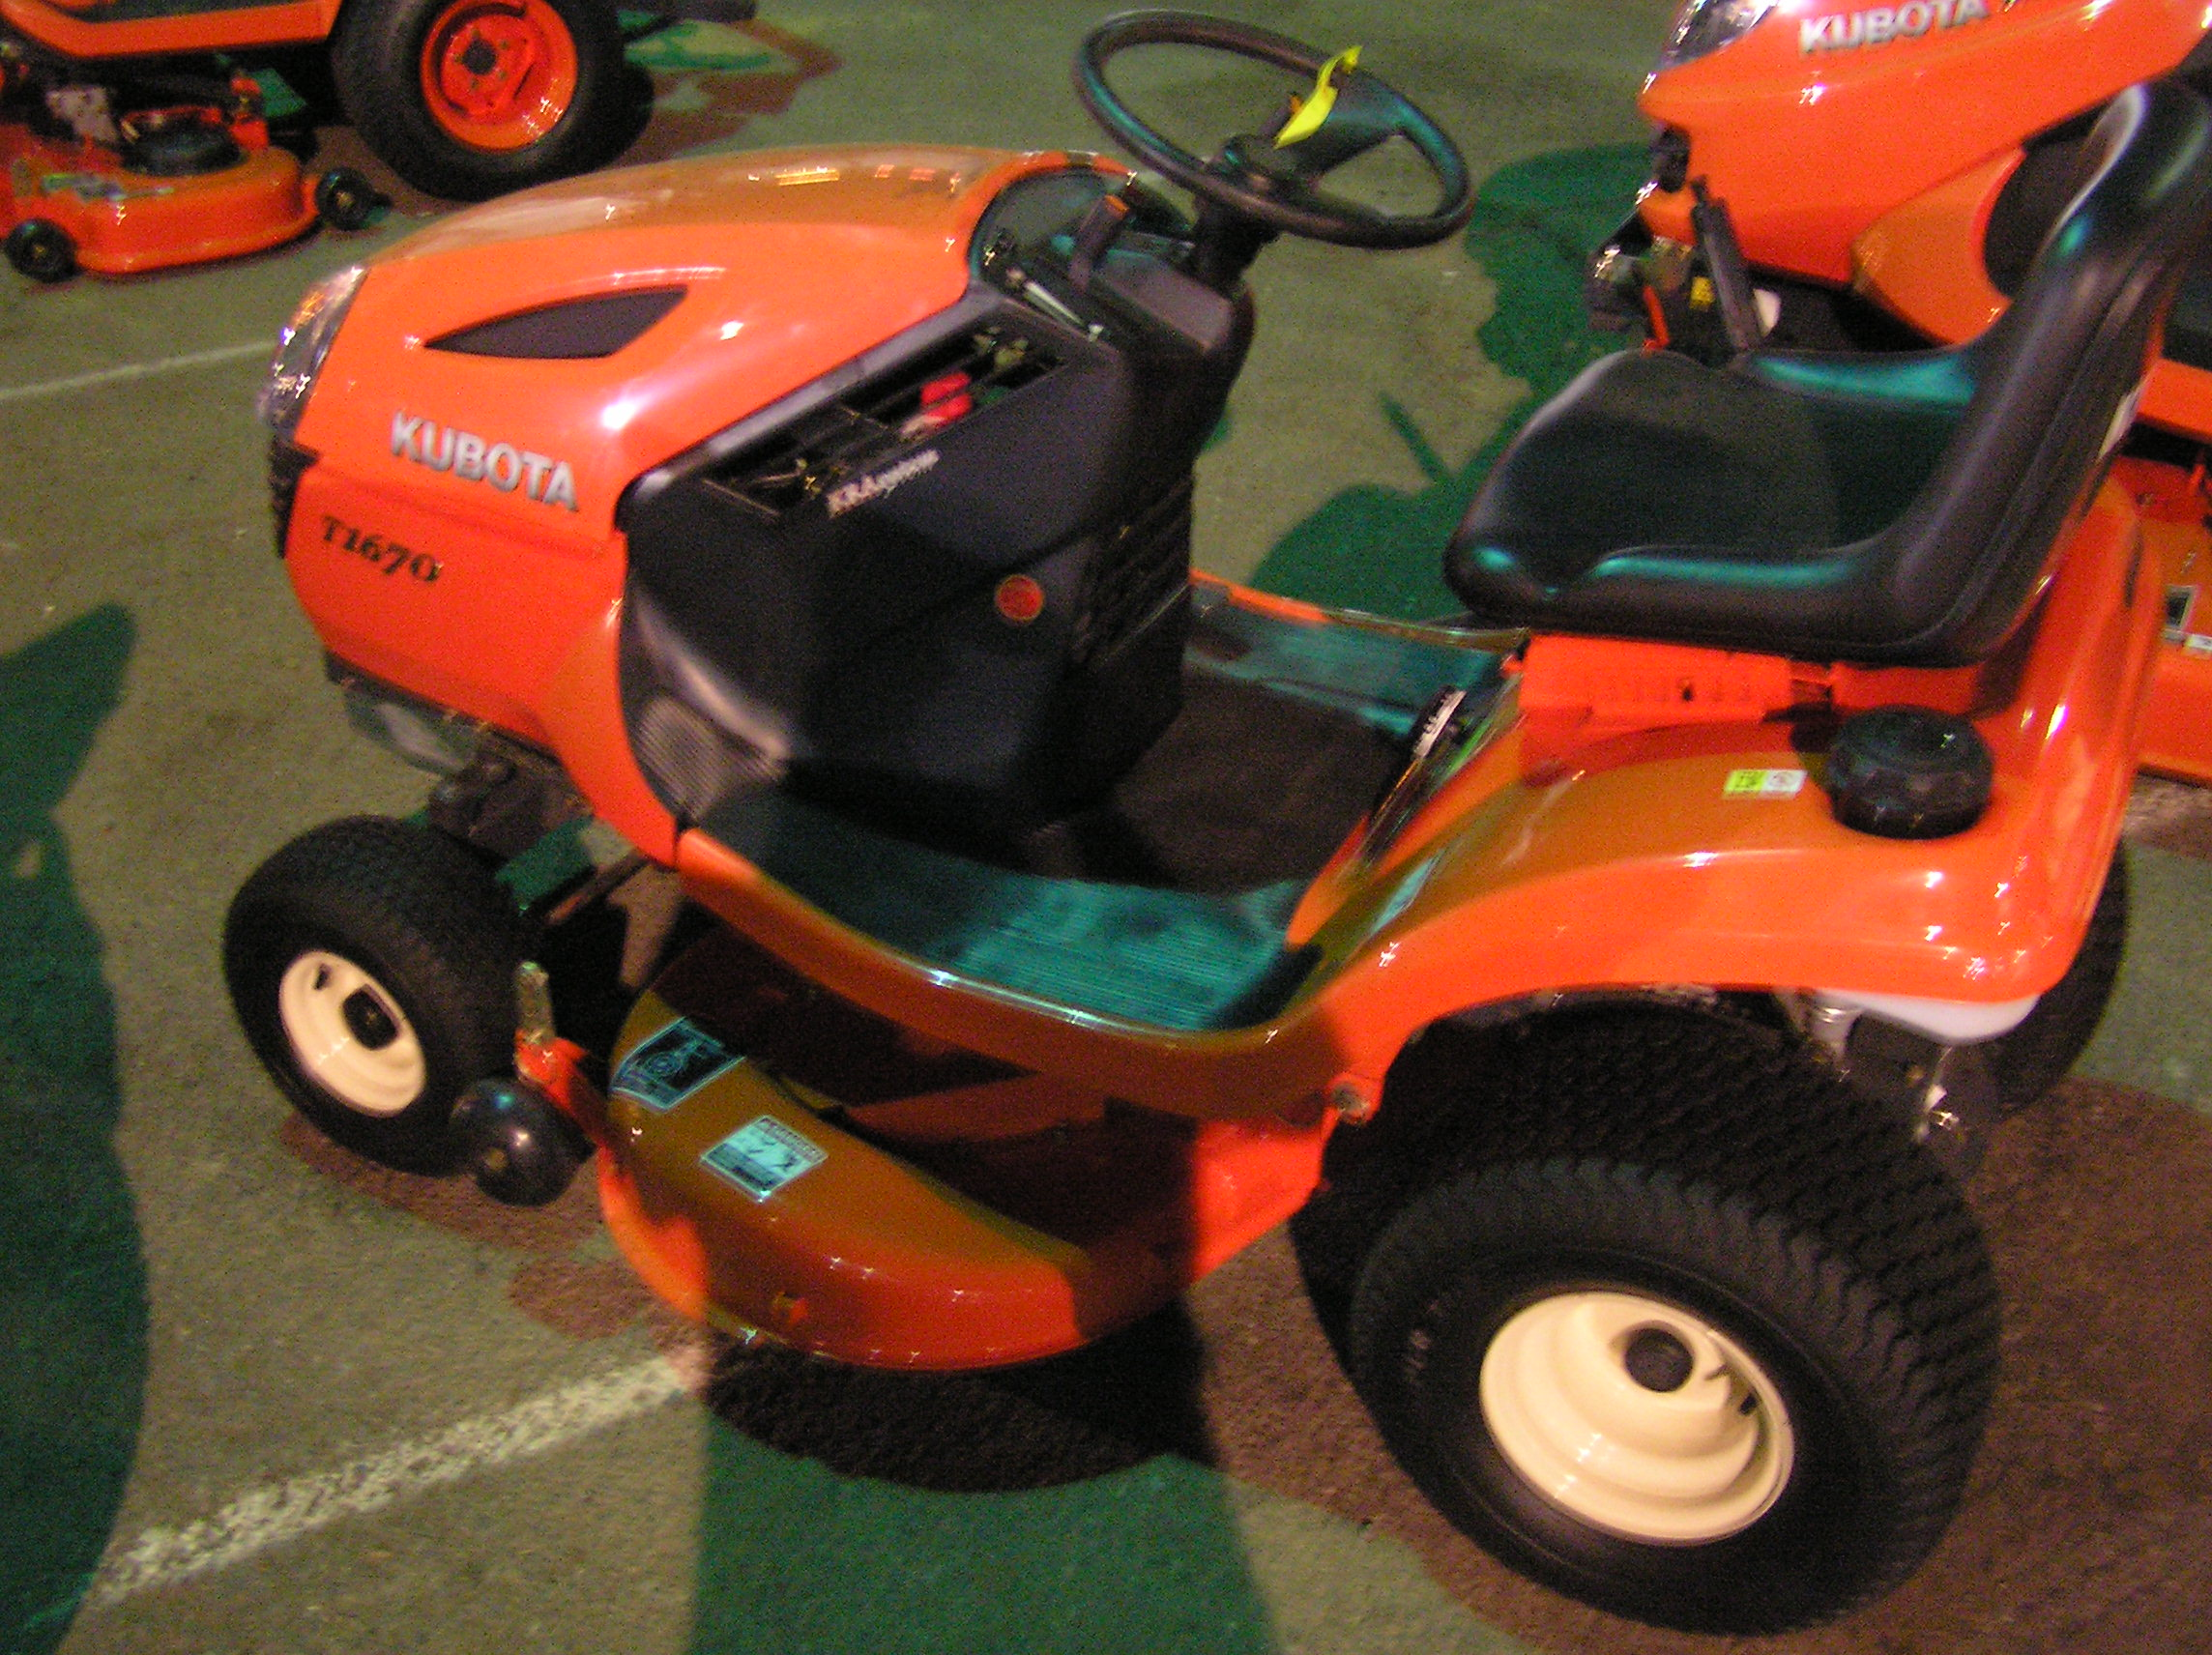 Kubota Riding Lawn Mowers - Reviews And Comparisions Of Kubota